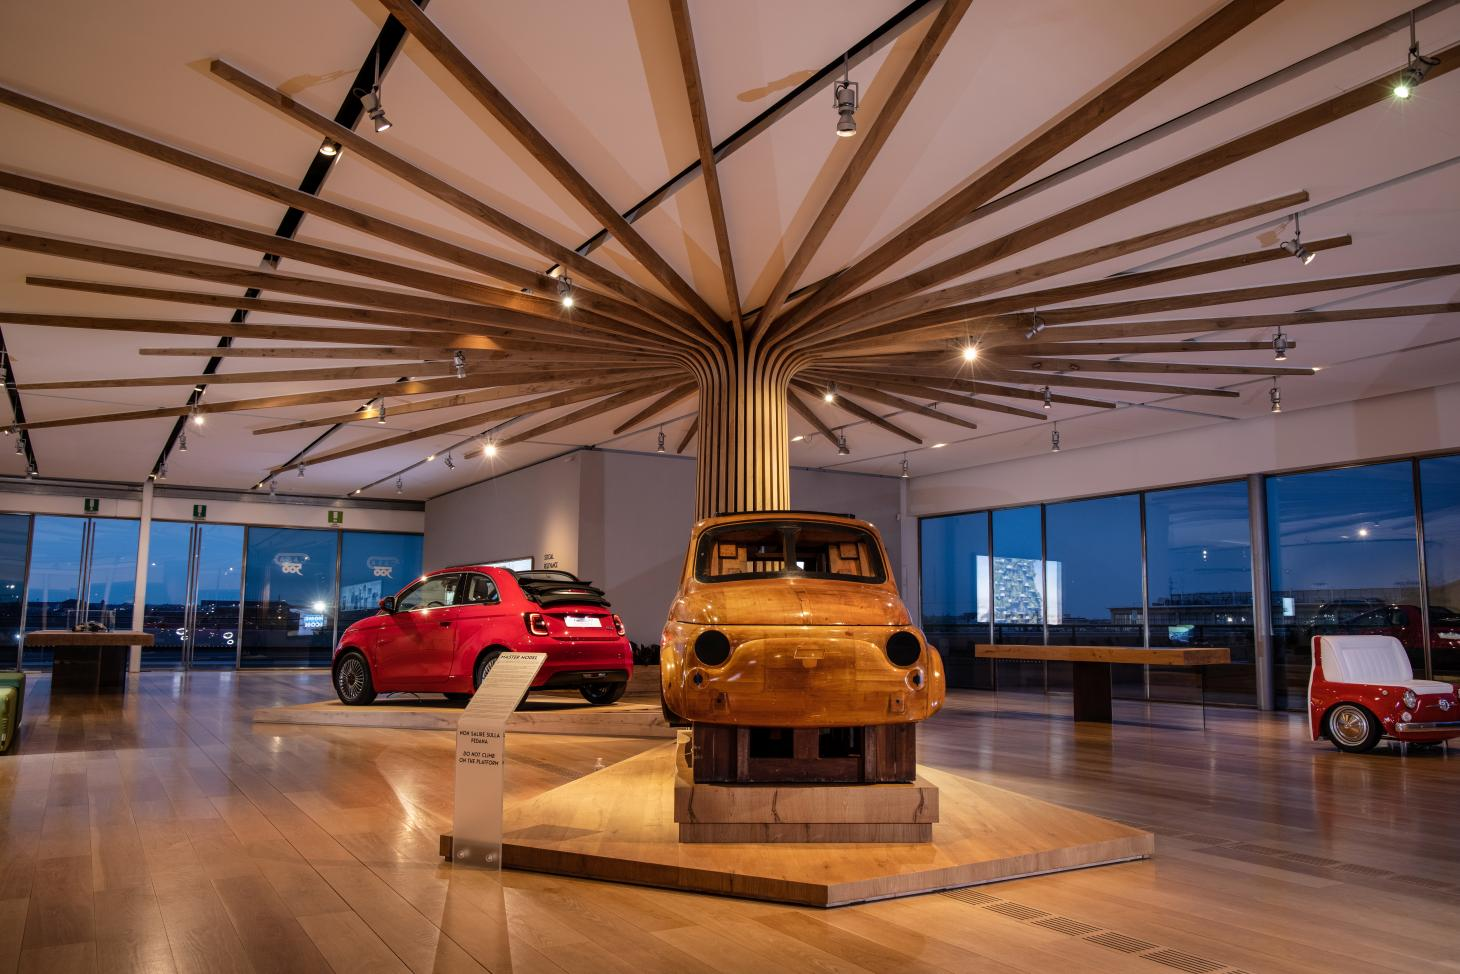 Casa 500, an exhibition that celebrates of the Fiat 500, old and new